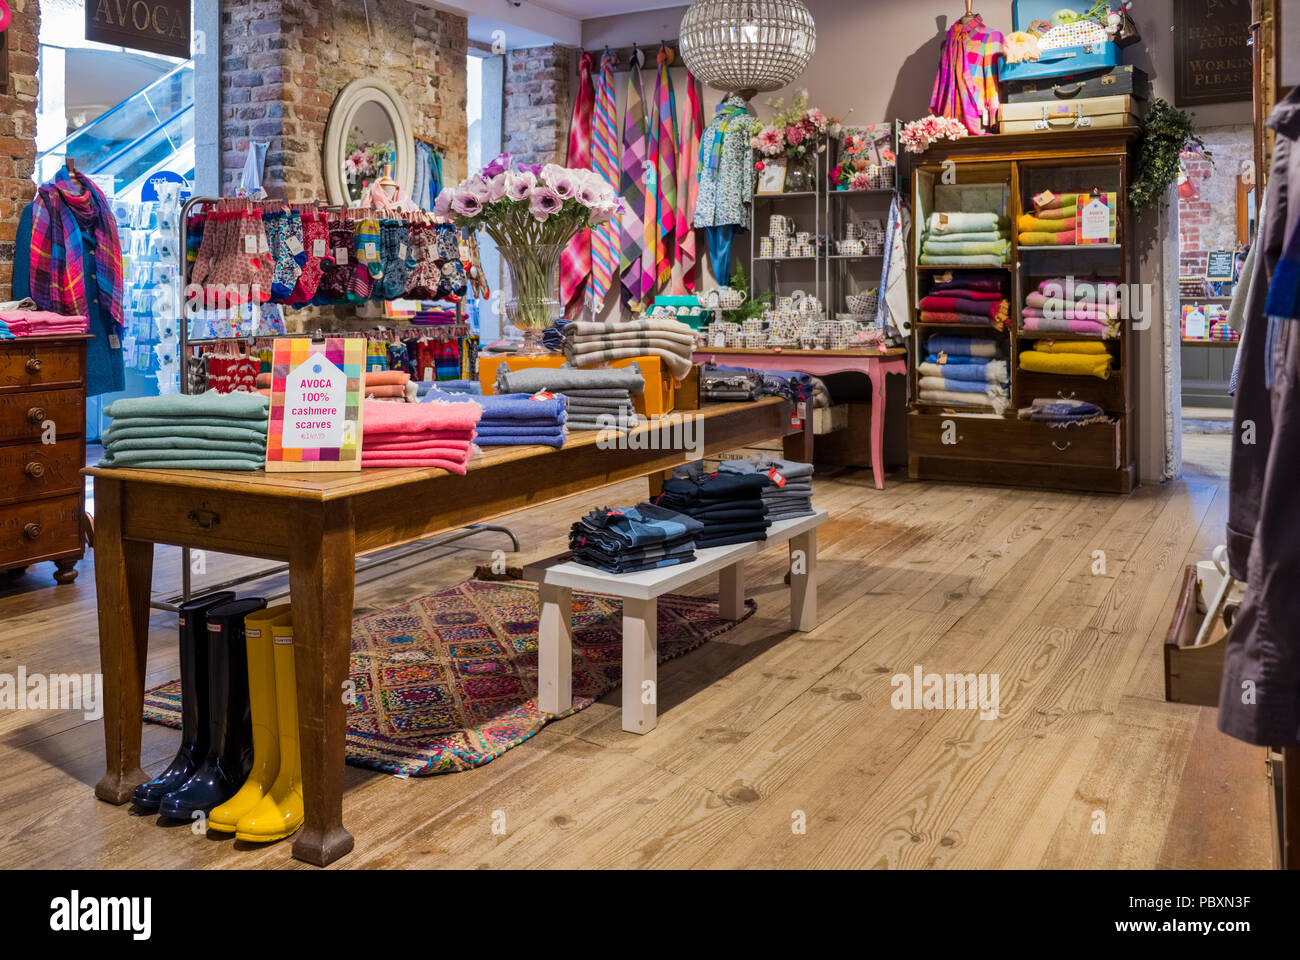 Interior of an Avoca shop, an upmarket retail store in the Republic of Ireland, Europe - Stock Image